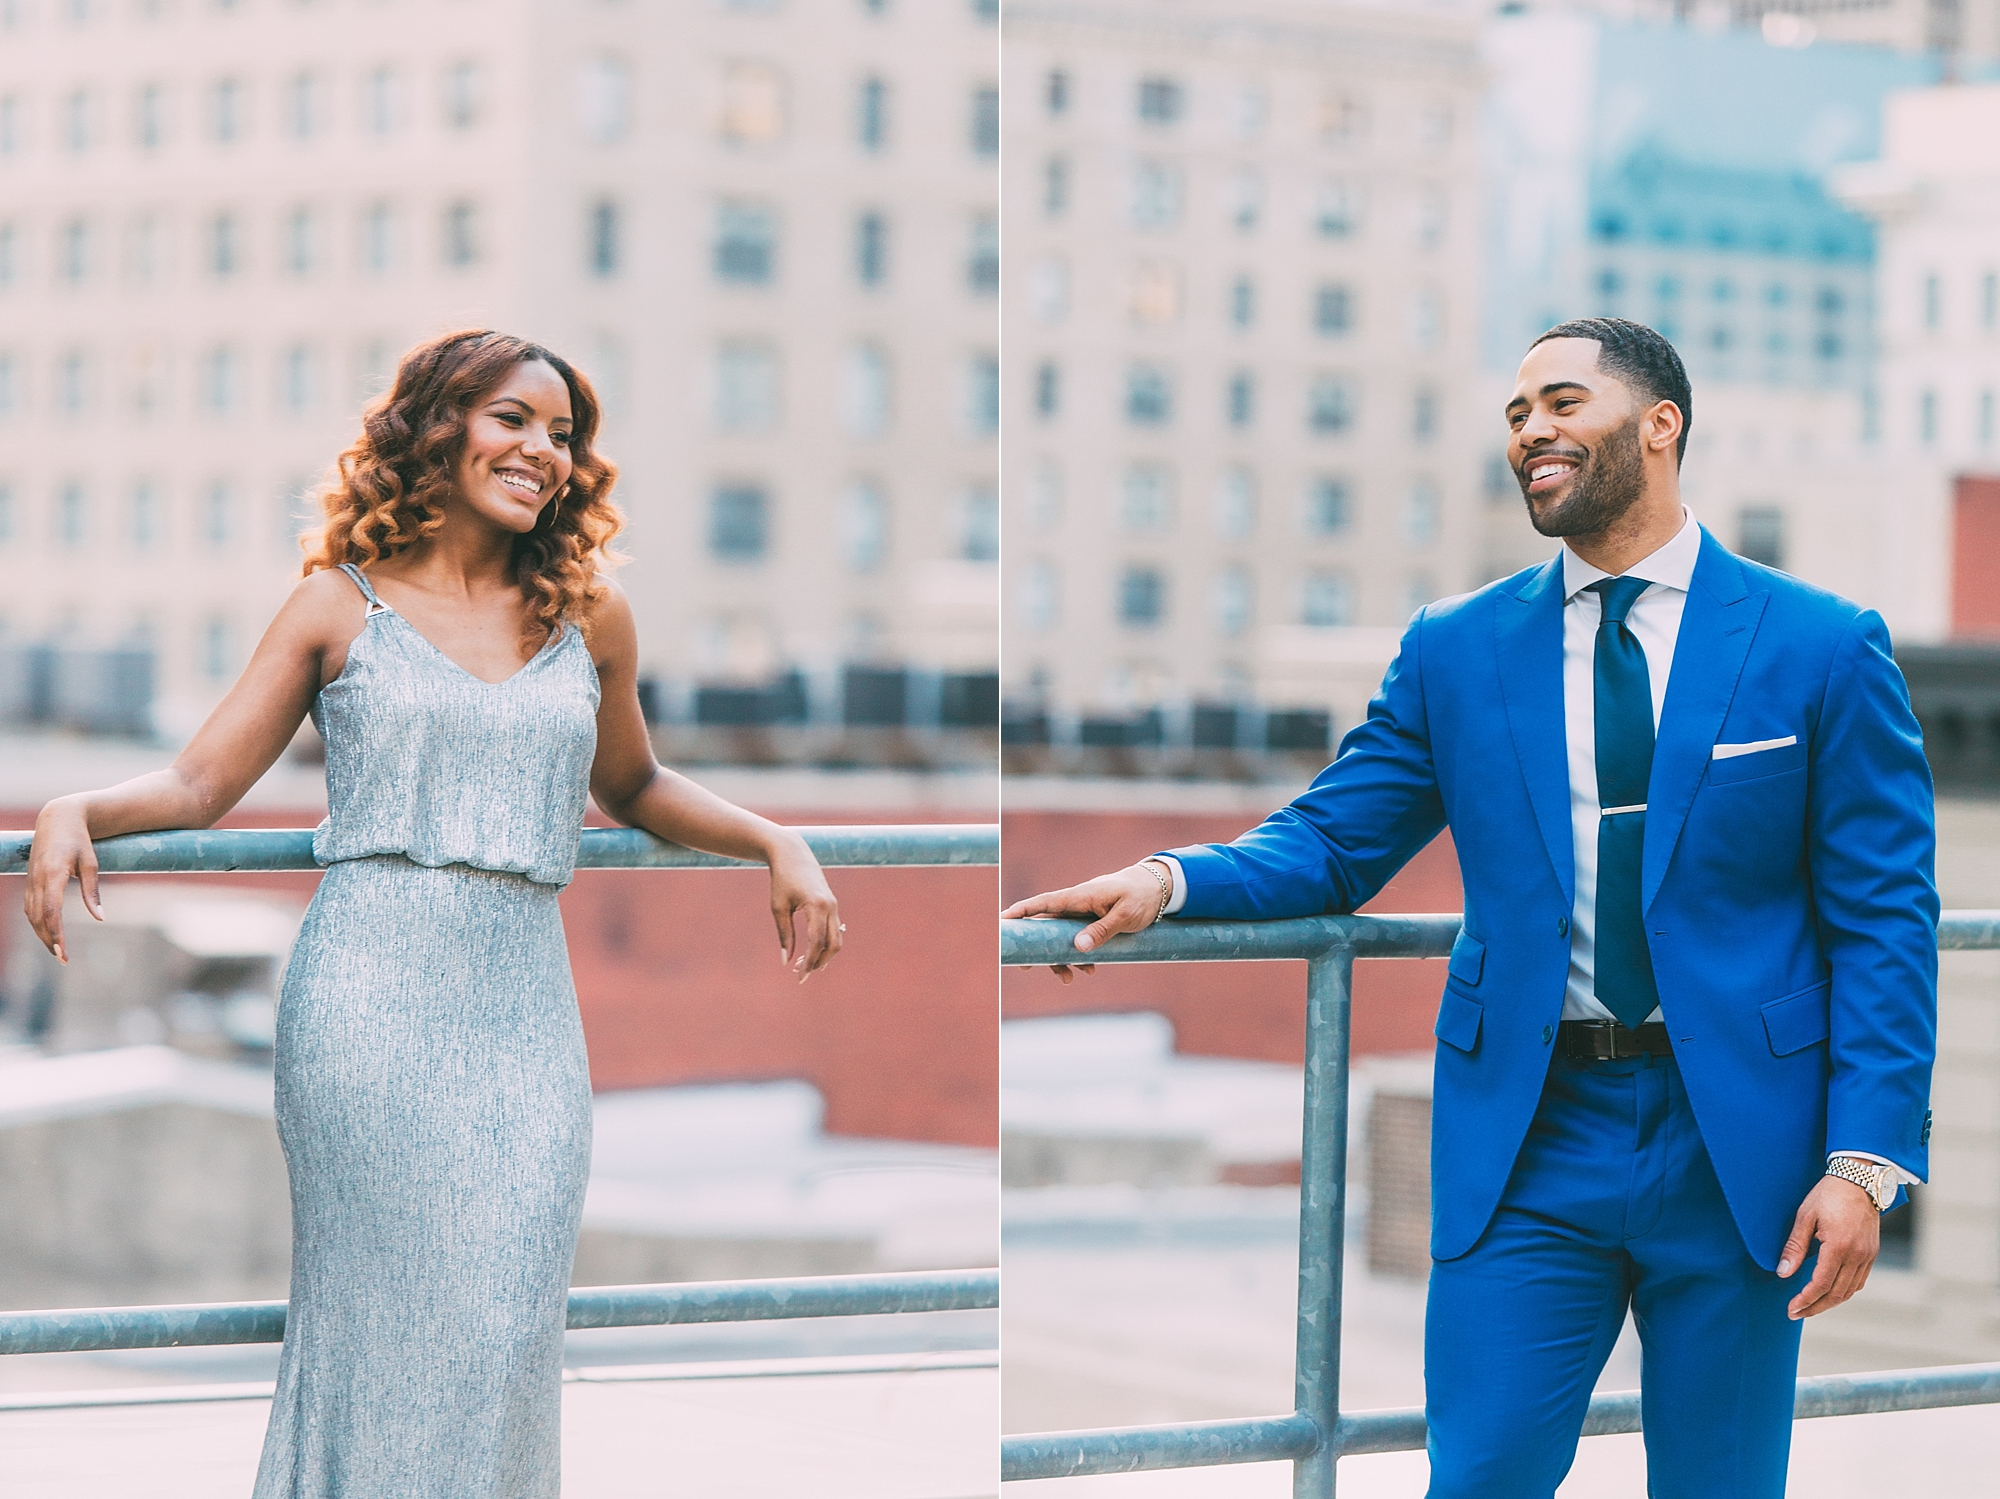 Joe_Mac_Creative_Wedding_Engagements_Photography_Philadelphia_Broad_Street_Proposal_0022.jpg